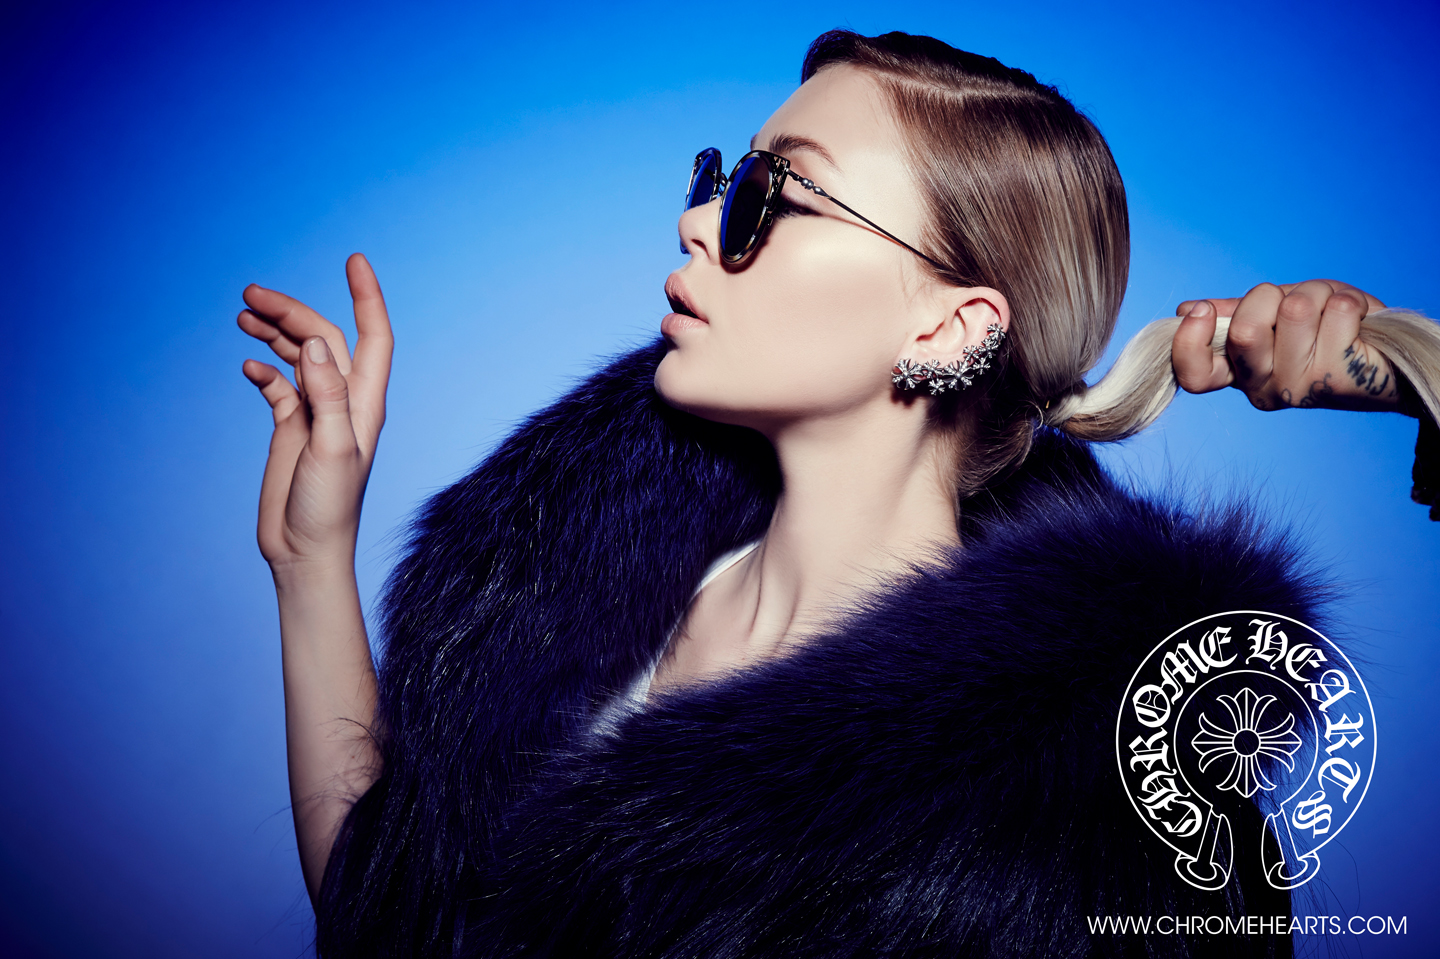 Lanna Lyon in CH glasses on blue backdrop | CHROME HEARTS Photography by Laurie Lynn Stark